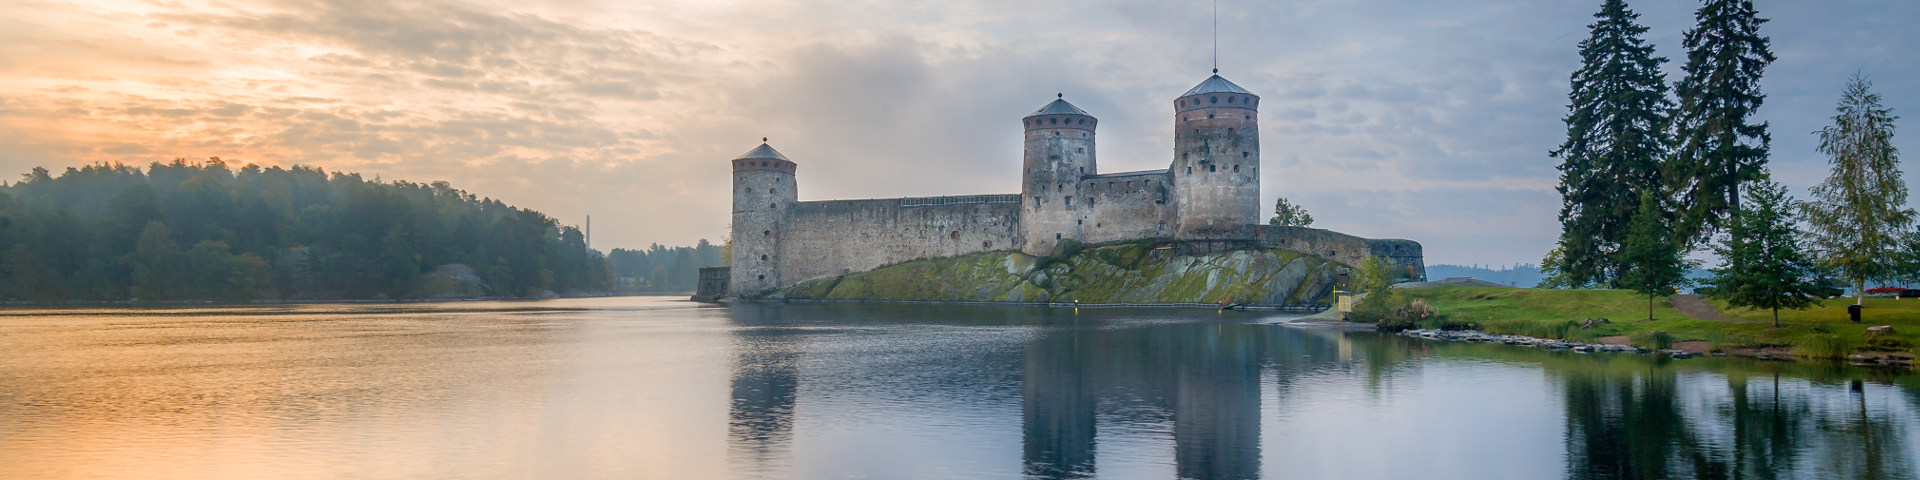 Savonlinna hero updated